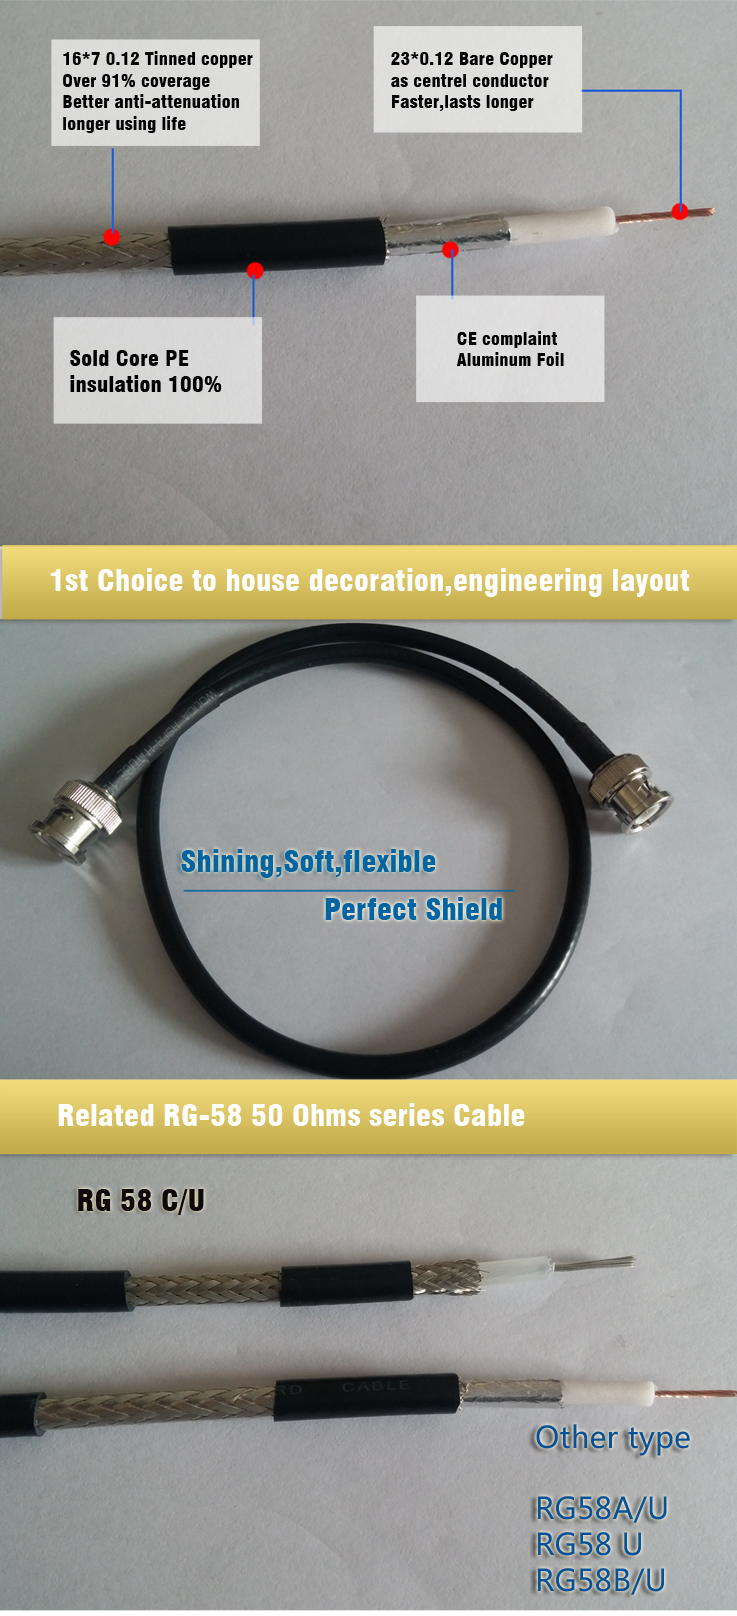 RG 58 A/U Coaxial Cable Made in China hangzhou high Quality RG 58 c/u Coaxial Cable Coaxial Cable 50 ohm rg58 coaxial cable pure